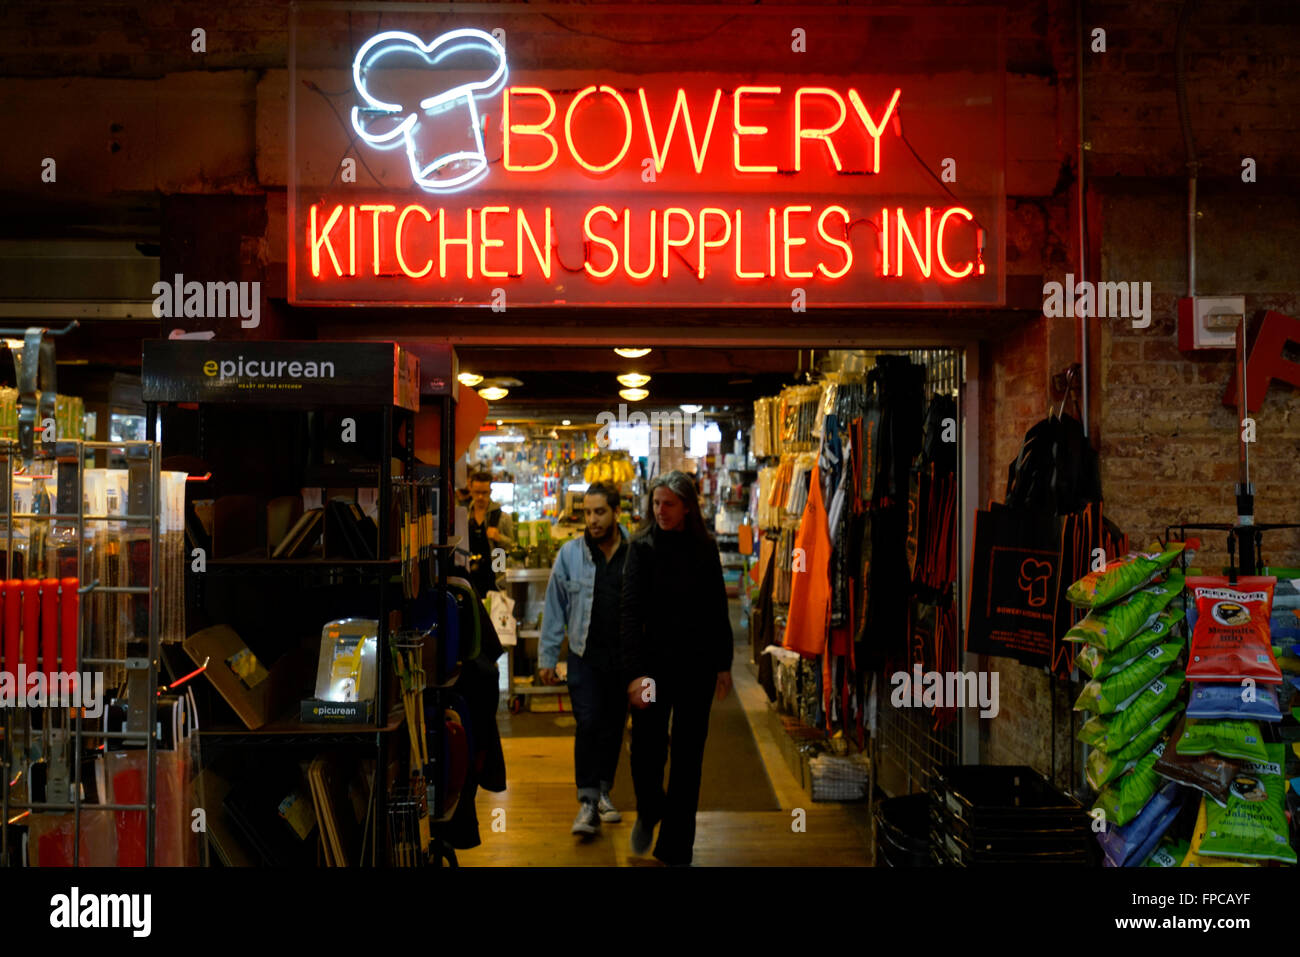 Lovely Bowery Kitchen Supplies Inc In Chelsea Market, Meatpacking District,  Manhattan, New York City, USA